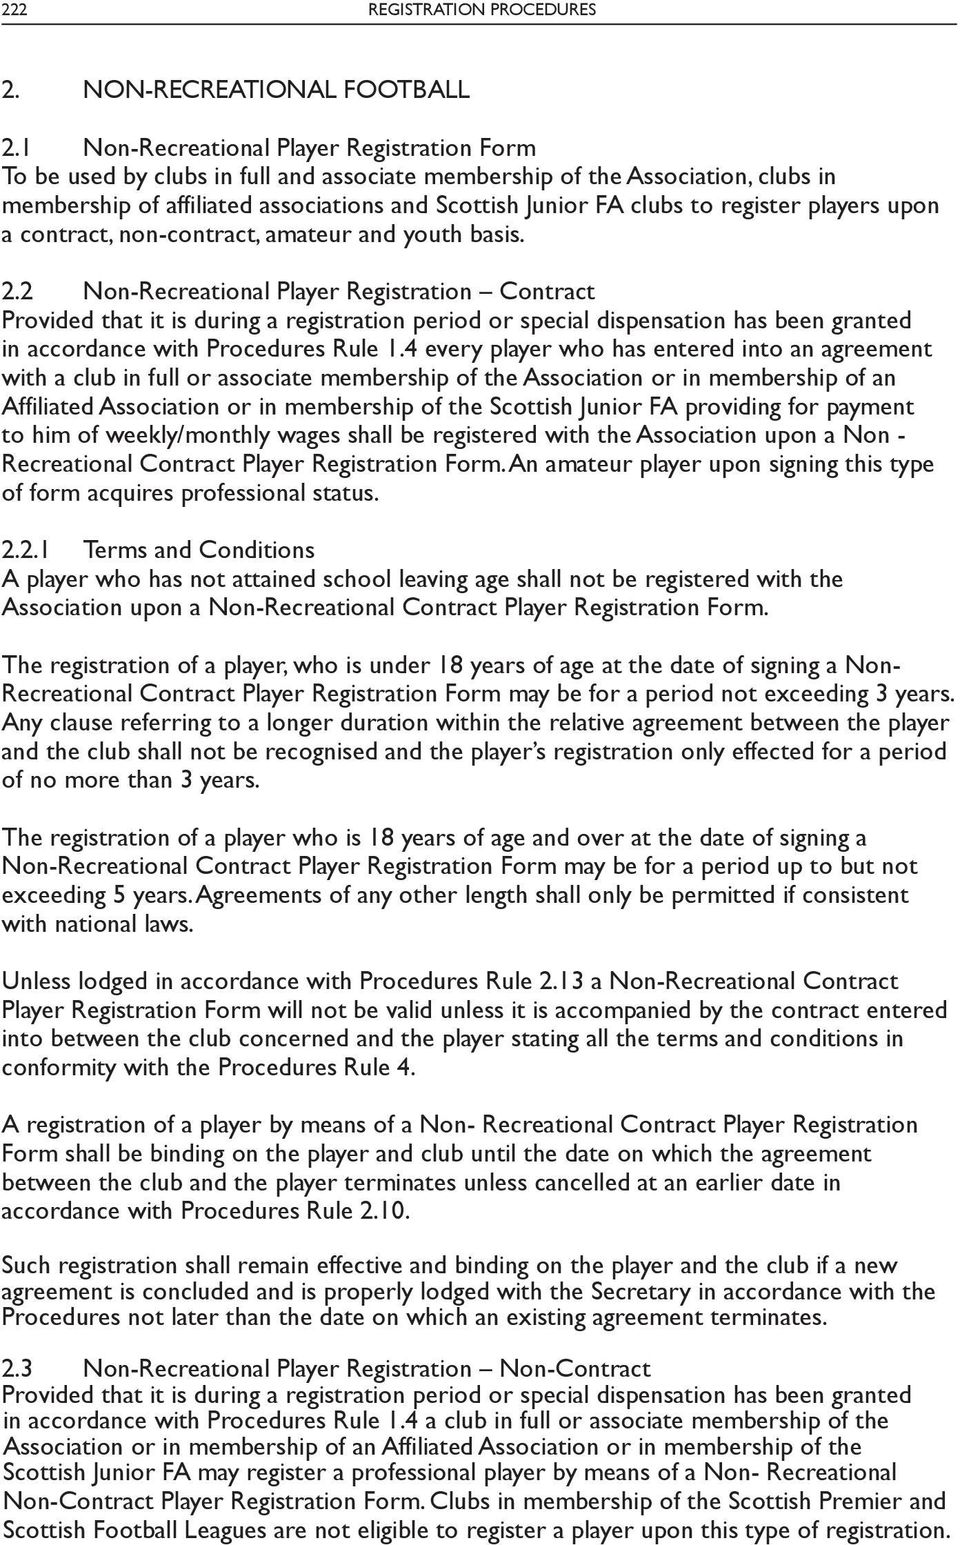 register players upon a contract, non-contract, amateur and youth basis. 2.